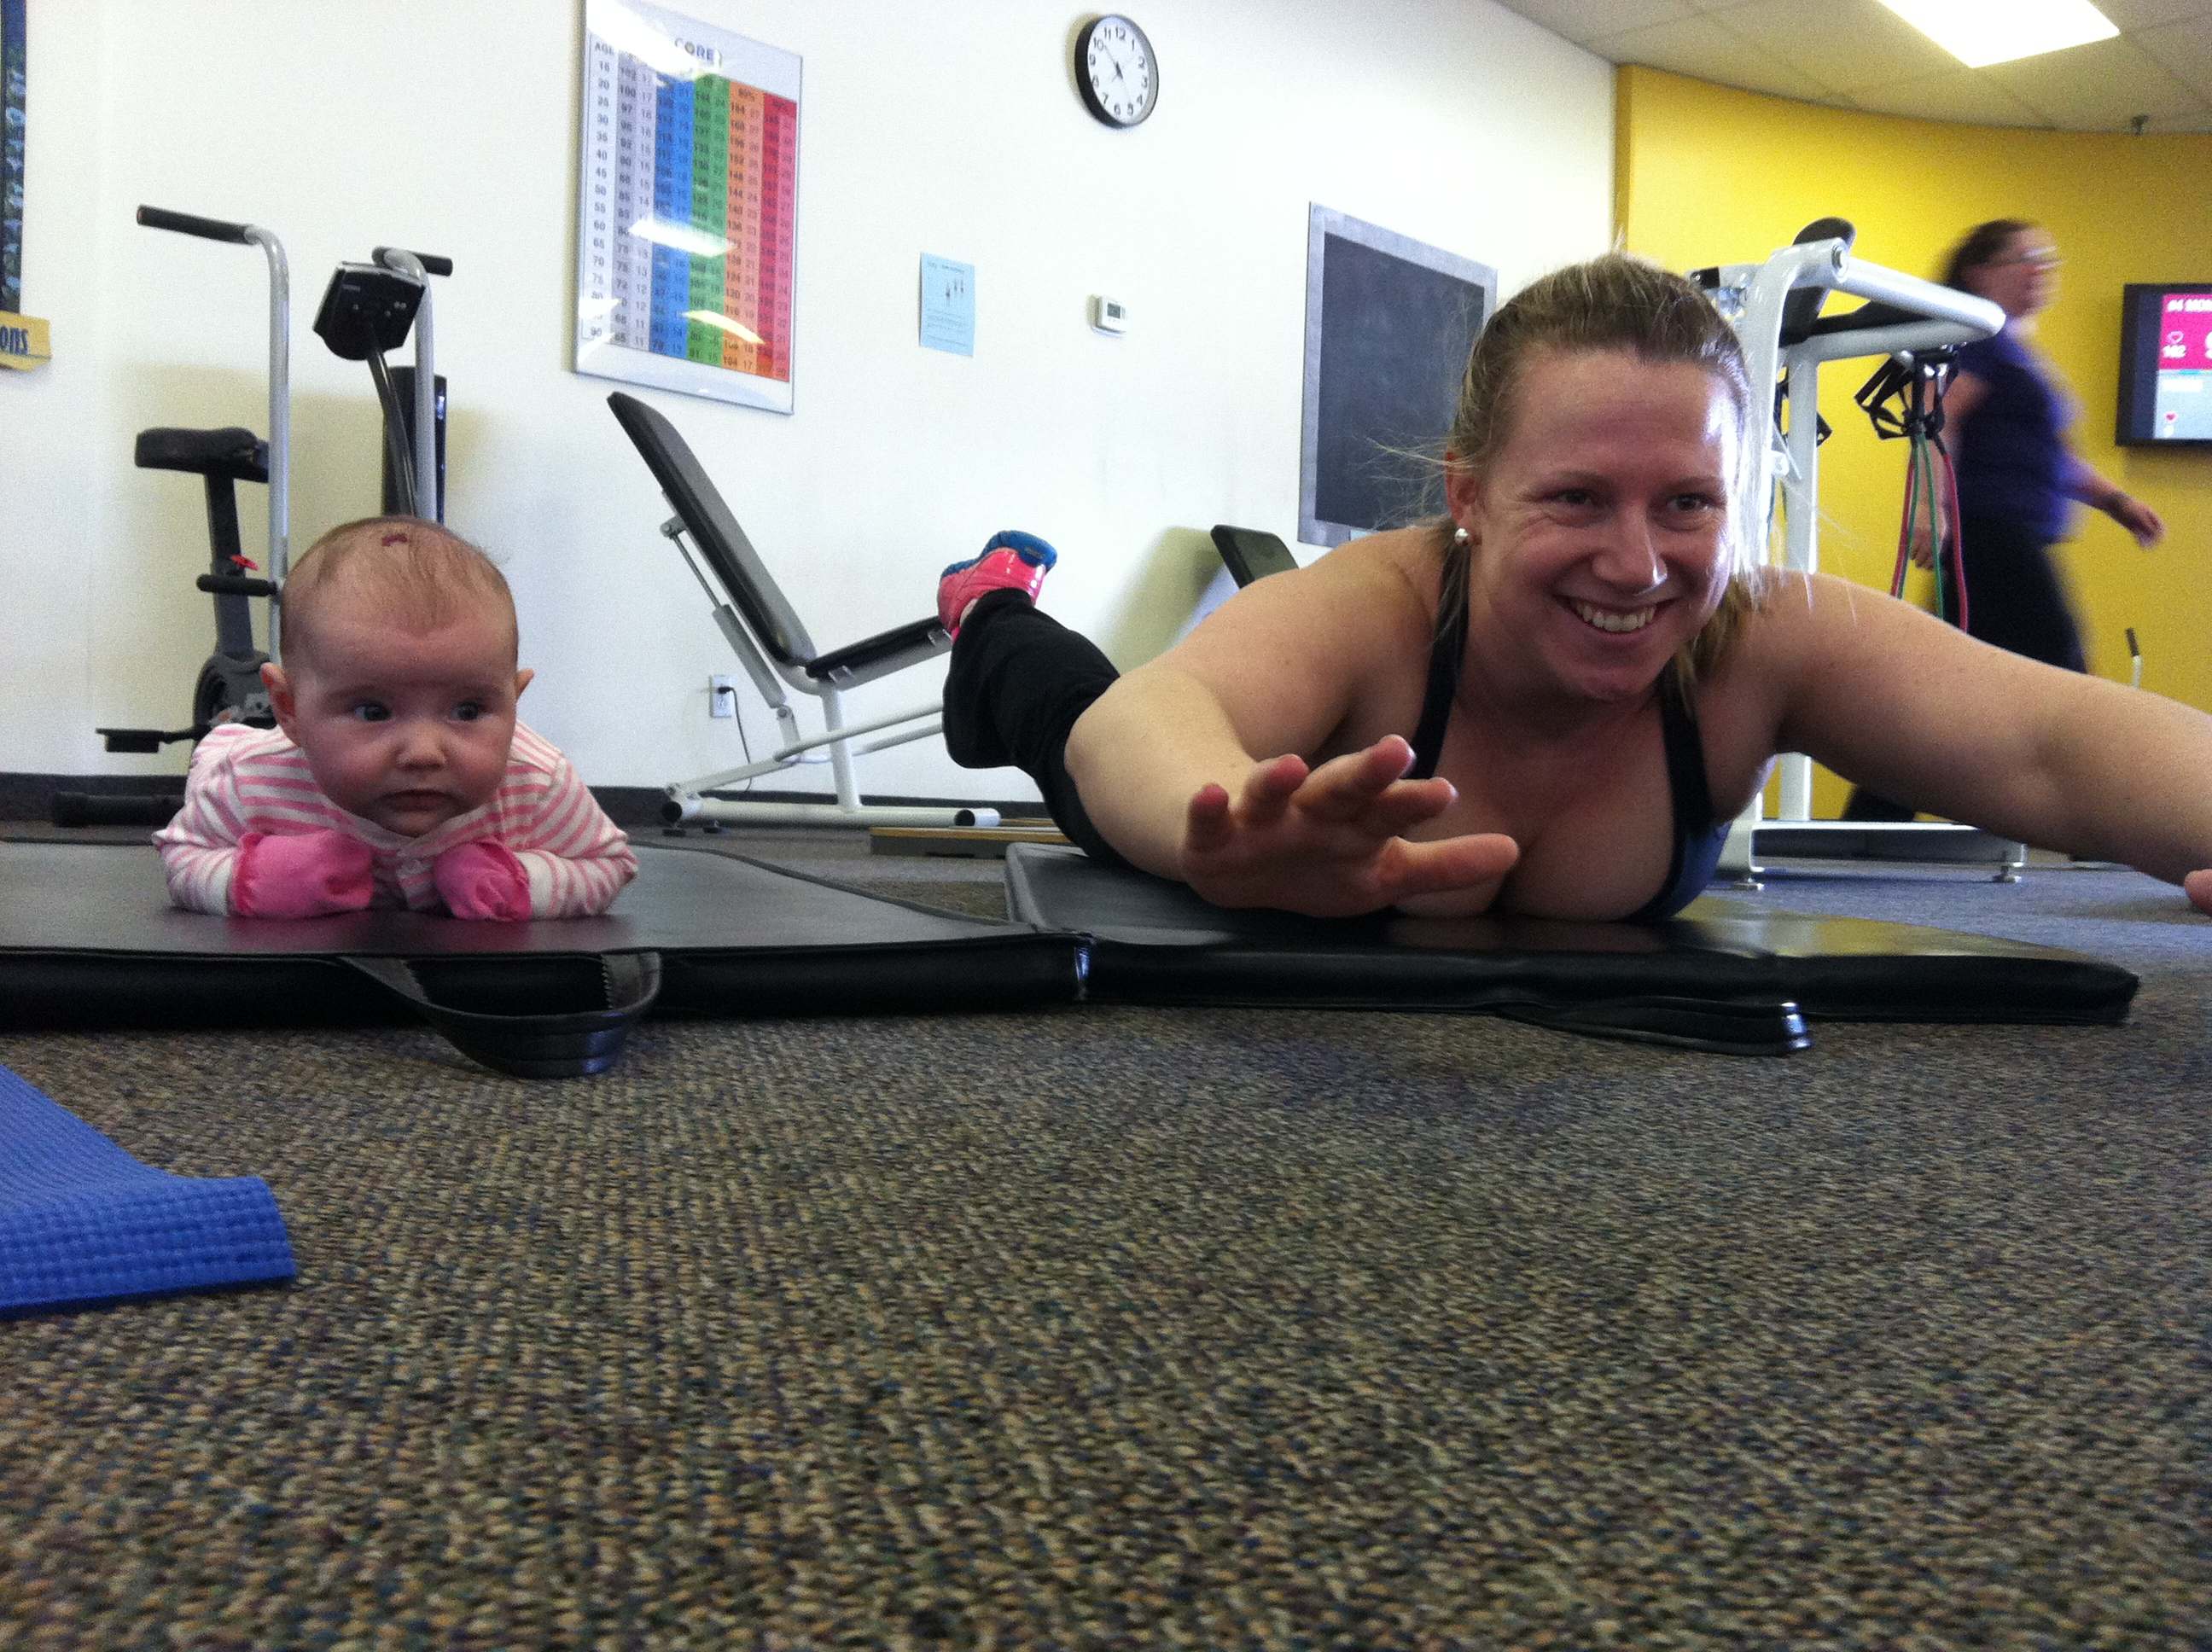 Lots of moms and daughters workout together.